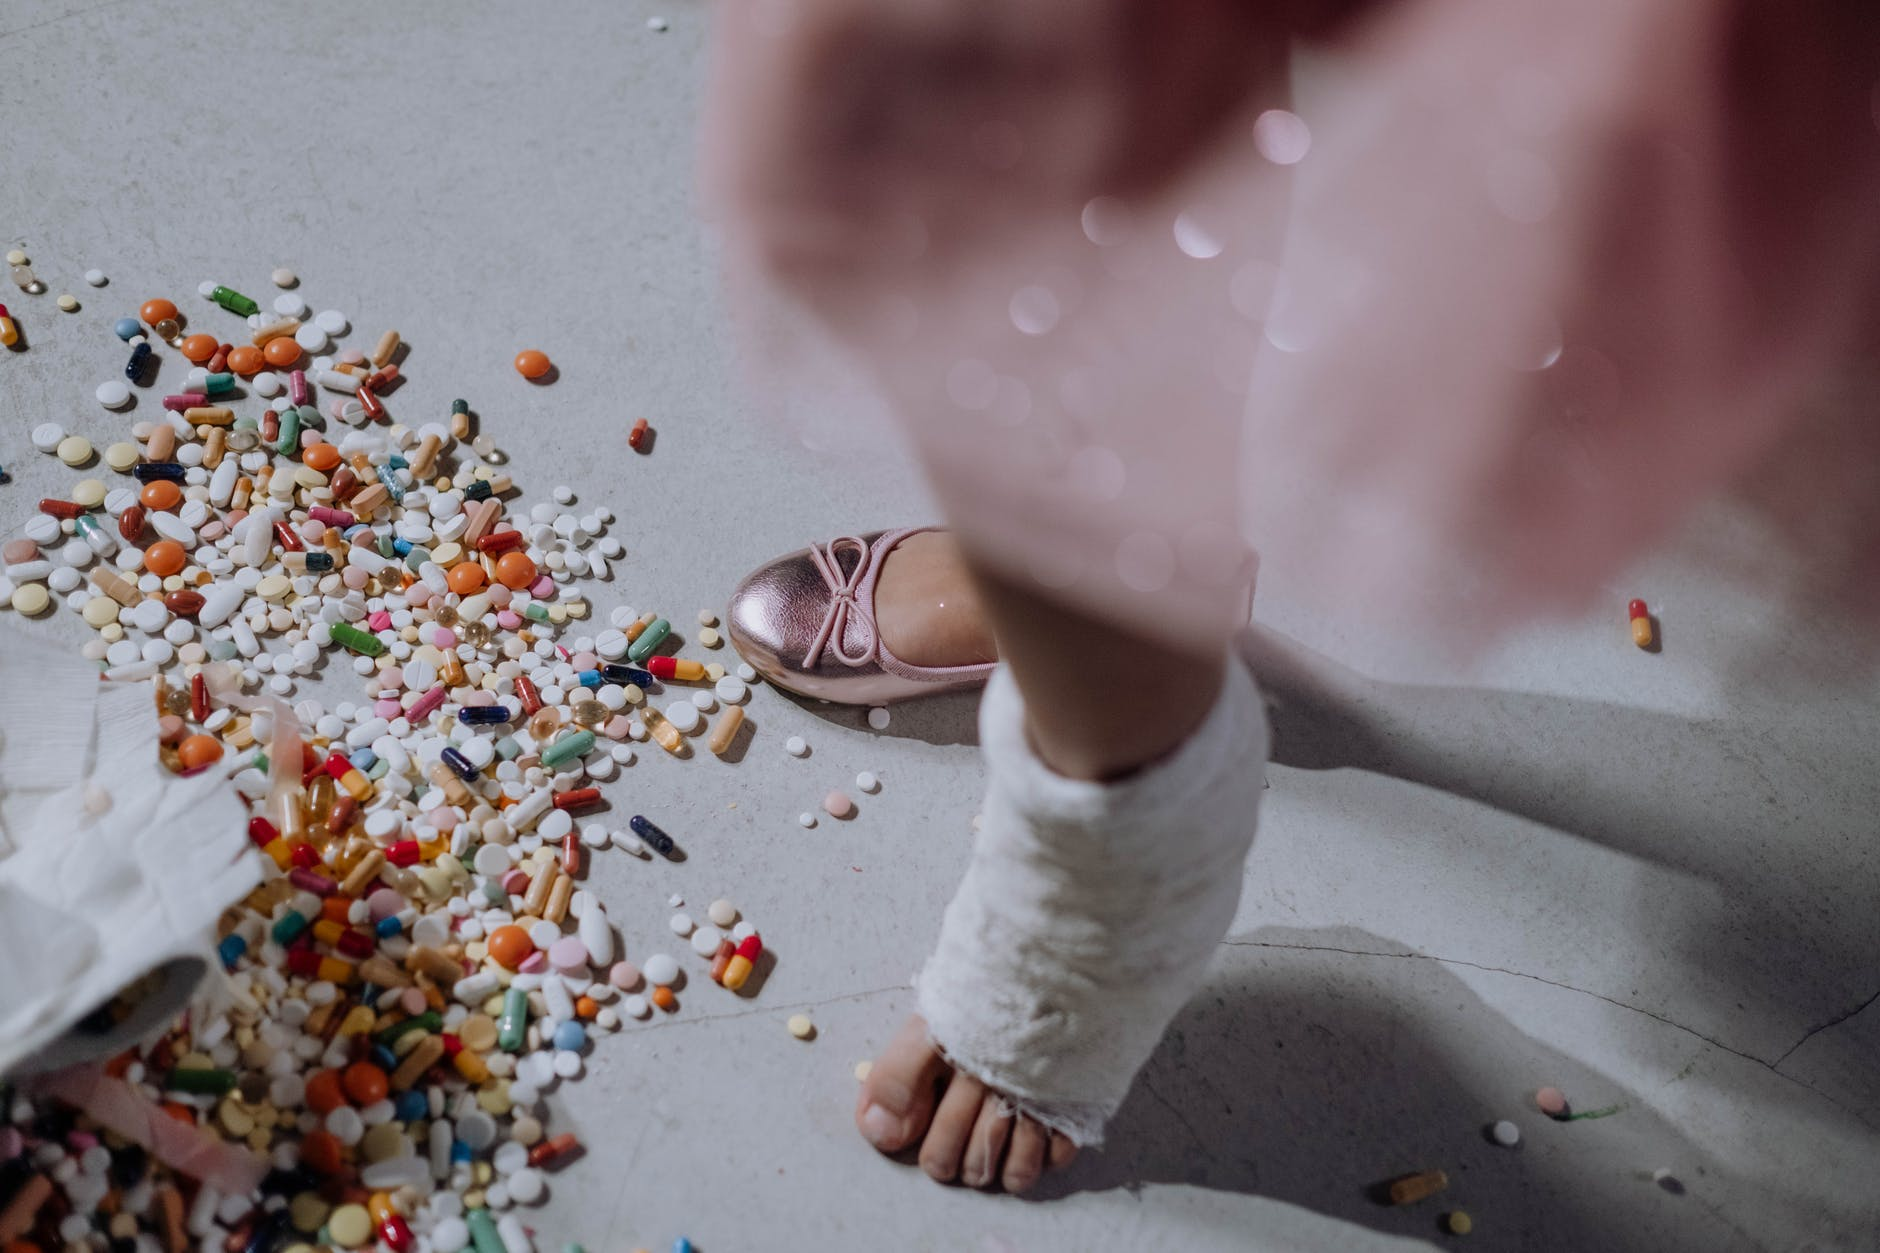 person in white pants and brown leather shoes standing on gray concrete floor with pink petals